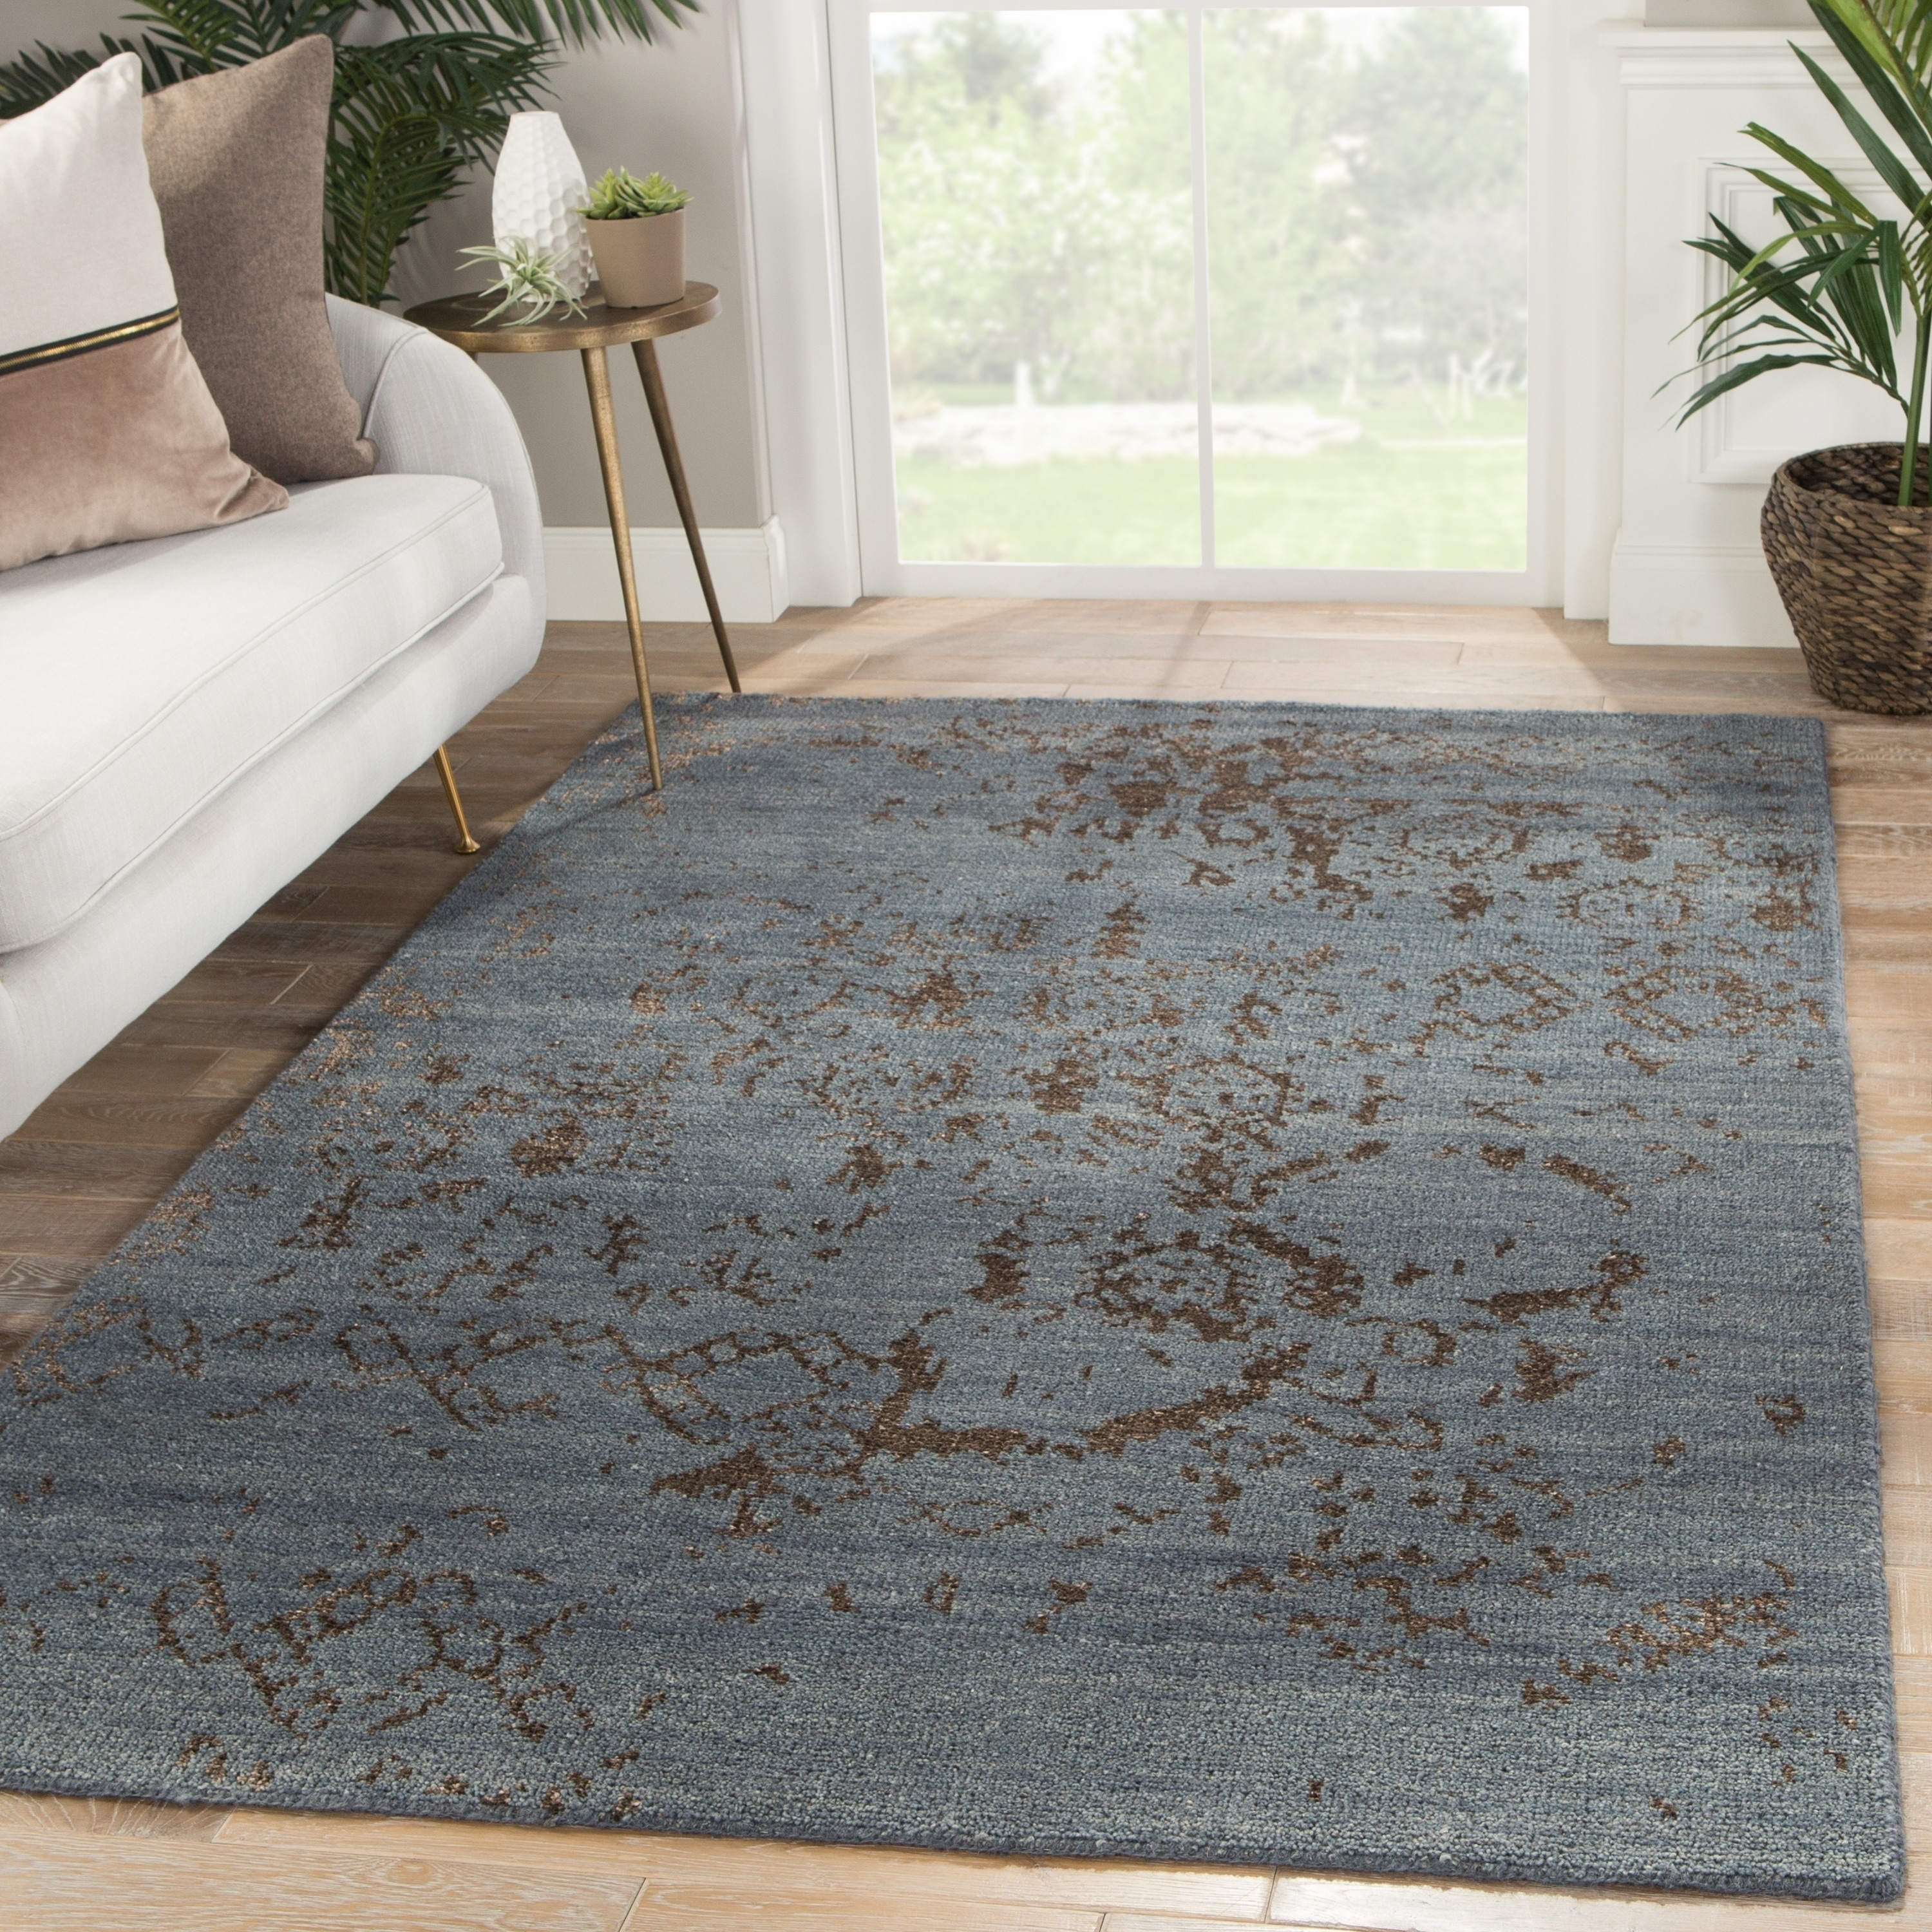 Shop Neila Hand Knotted Abstract Blue Brown Area Rug 9 X 13